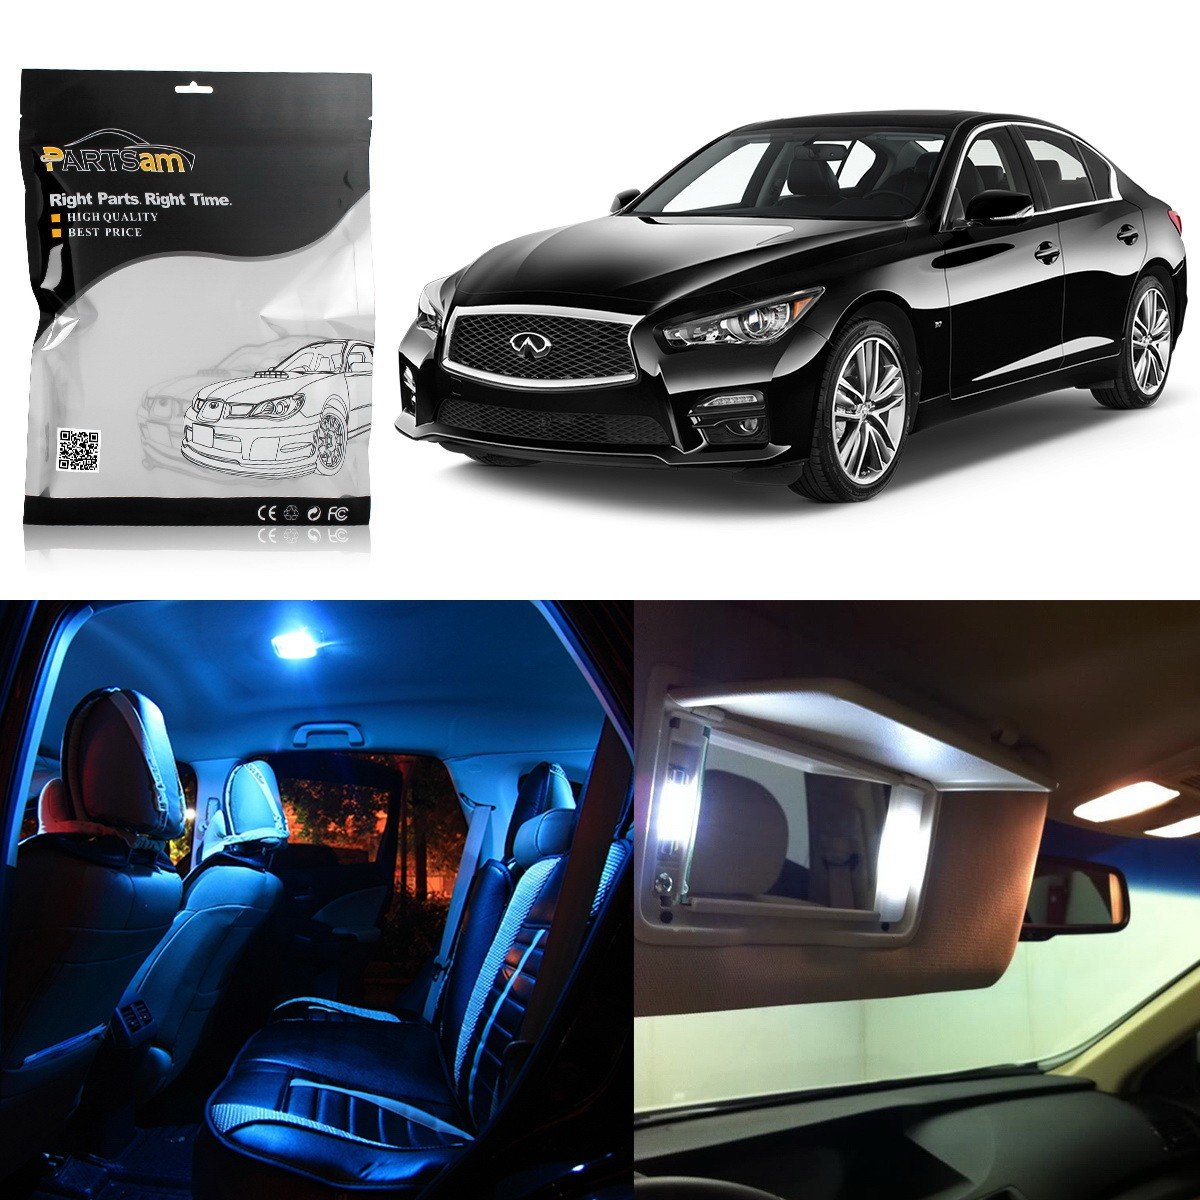 Amazon.com: Partsam 2014 2015 Infiniti Q50 White Interior LED Package Kit + Tag Lights (10 Pieces): Automotive